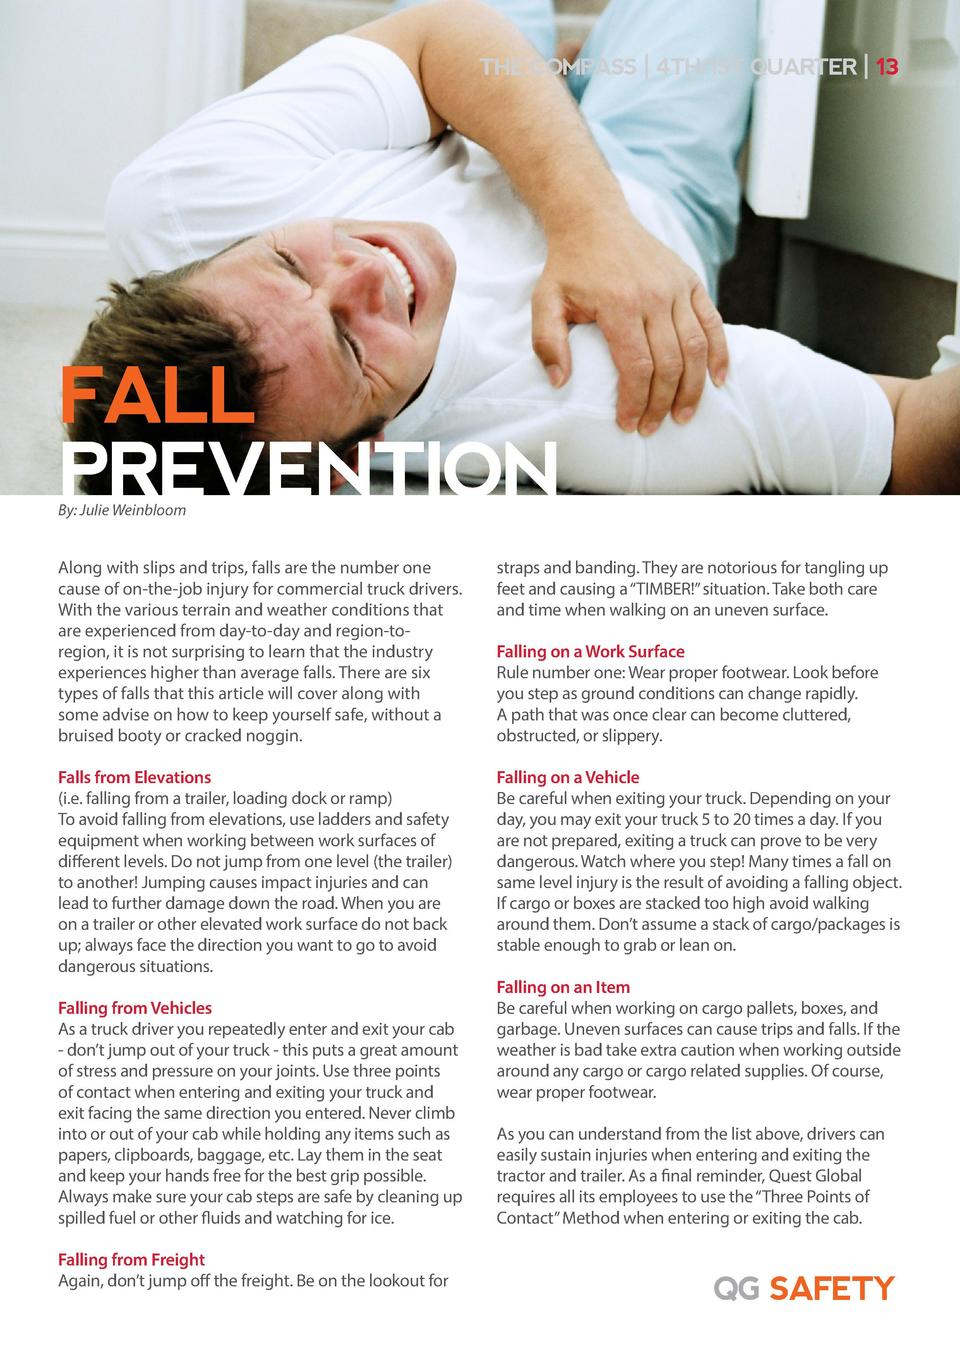 THE COMPASS   4TH 1ST QUARTER   13  FALL PREVENTION By  Julie Weinbloom  Along with slips and trips, falls are the number ...